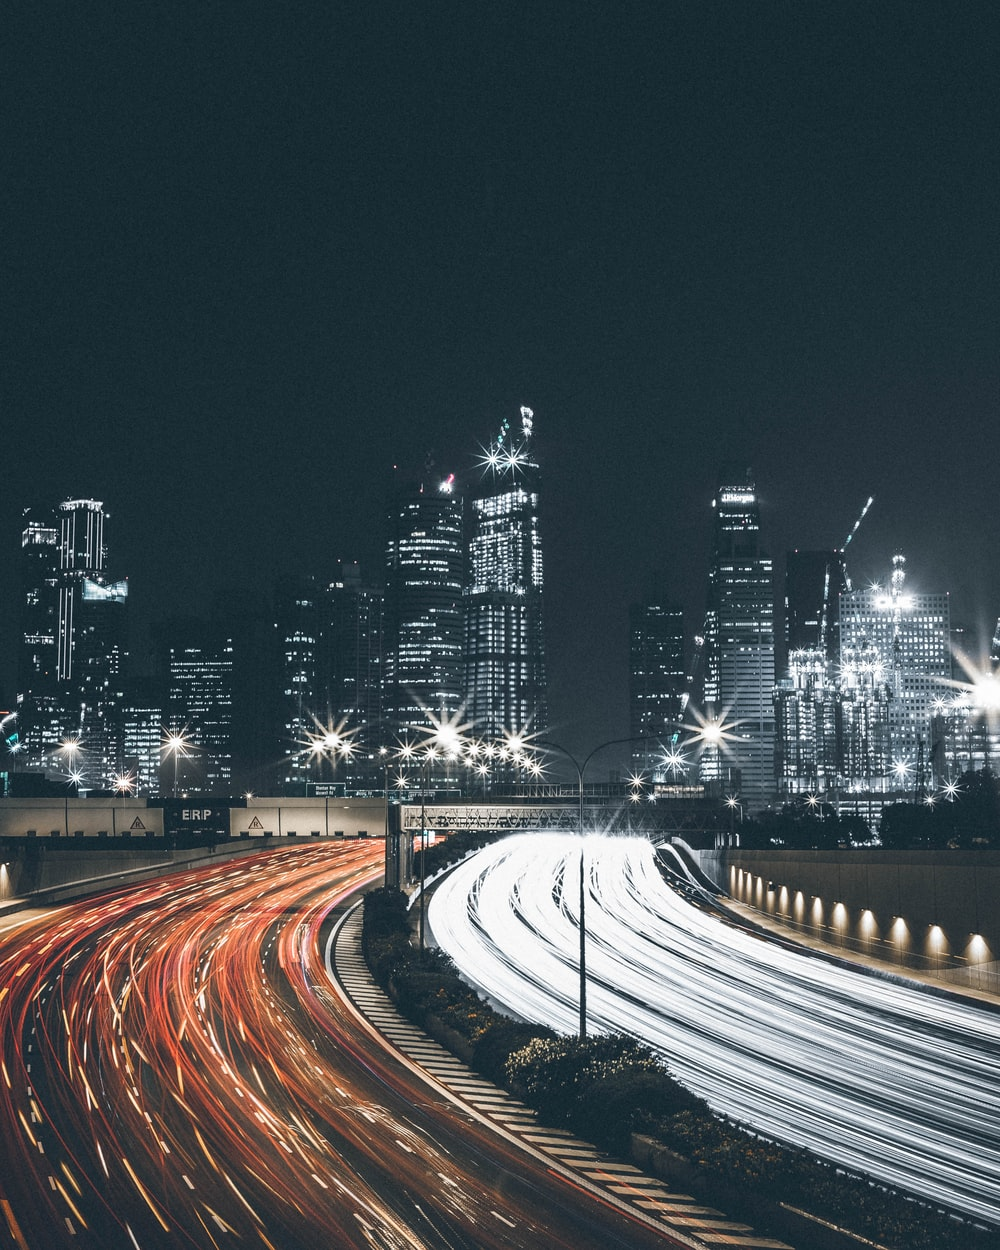 A Photo Of Lit Up City Skyline With Light Trails From Traffic Time